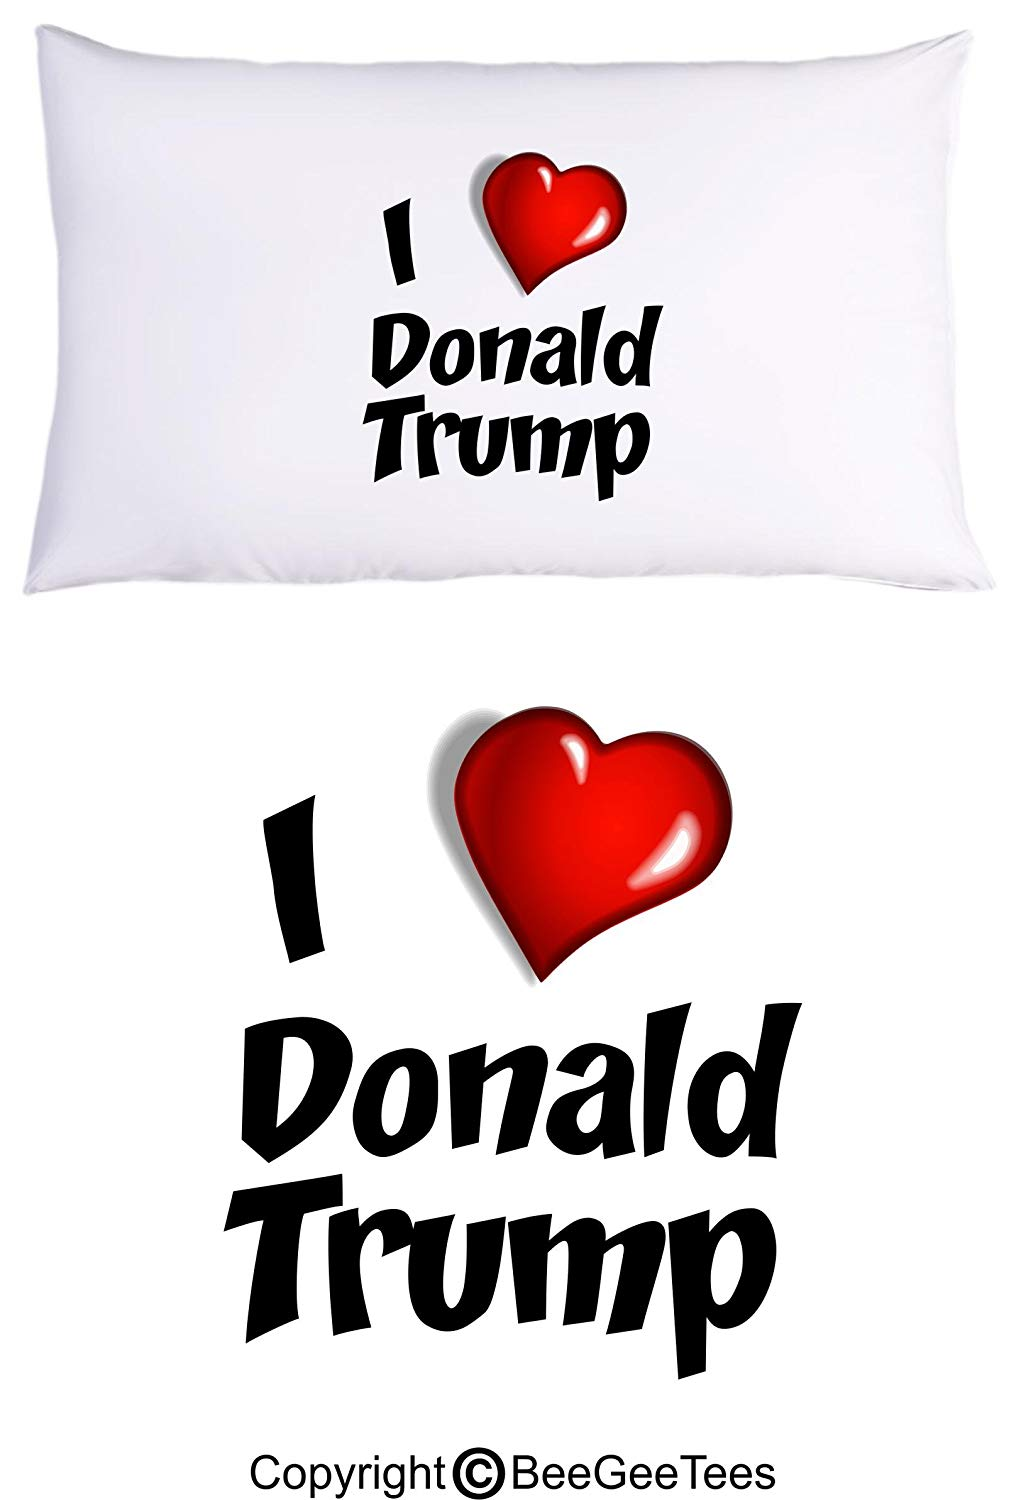 I Love Donald Trump With Heart President Trump Pillowcase by BeeGeeTees (1 Queen Pillowcase)